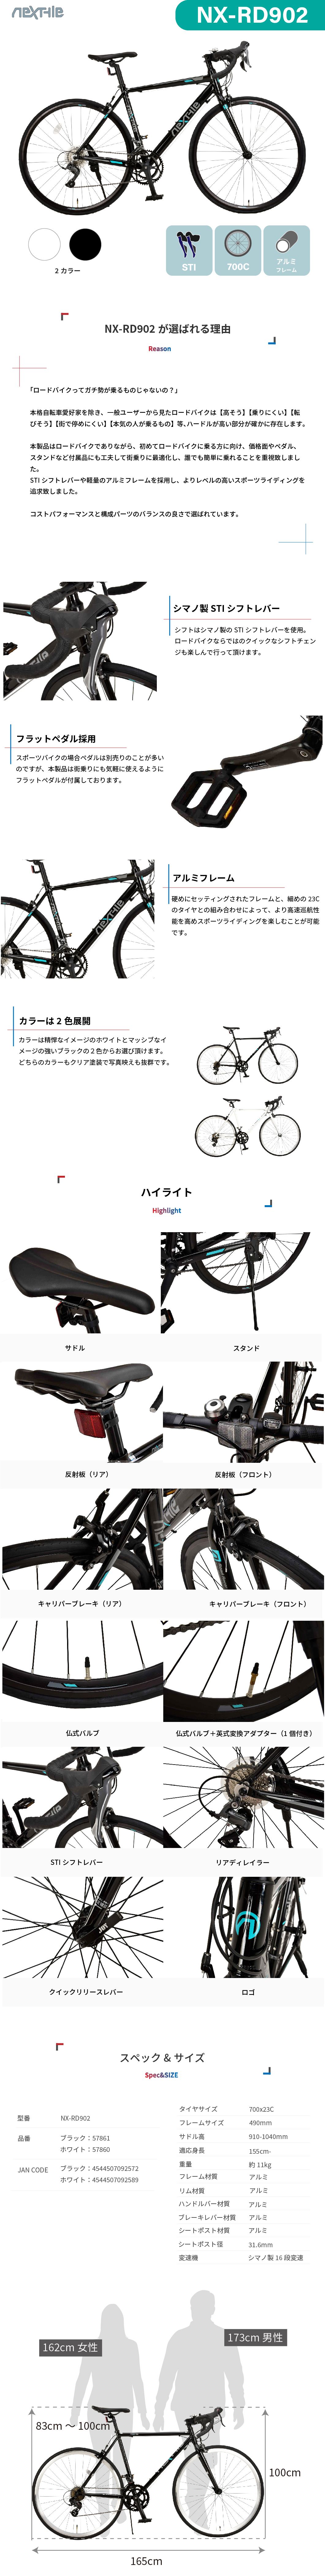 NX-RD902_promotion